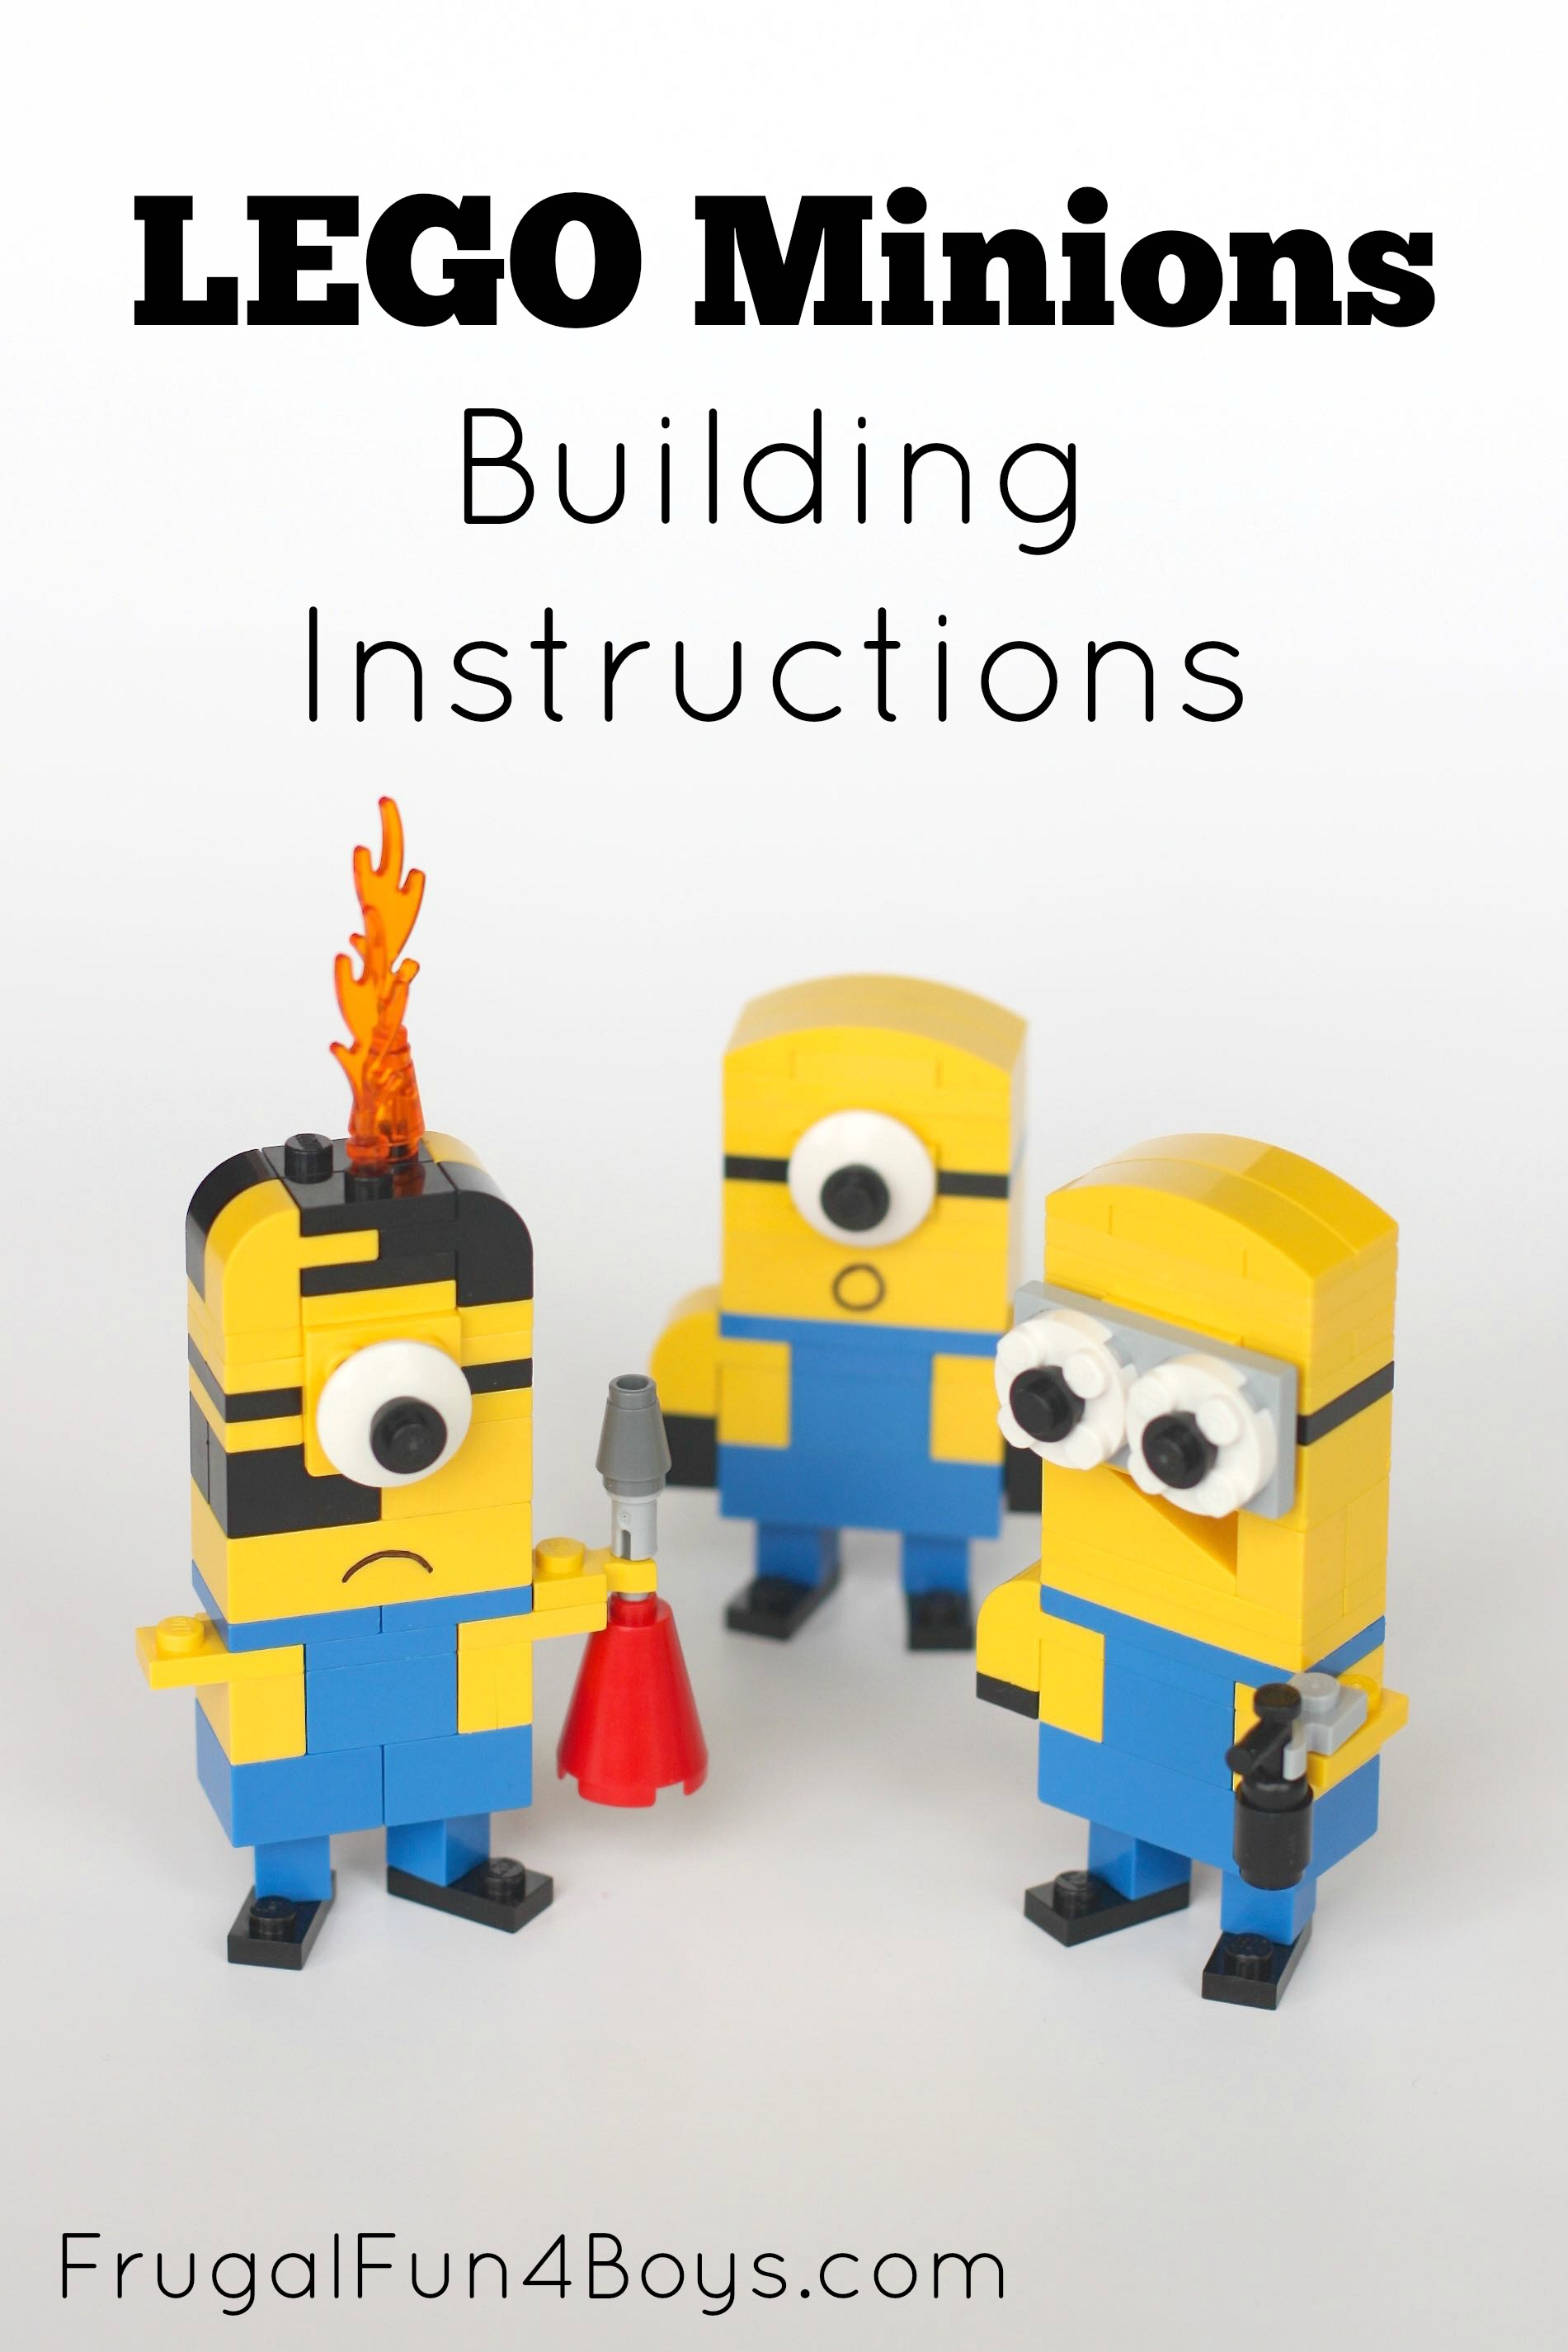 Lego minions building instructions for How to build a house step by step instructions